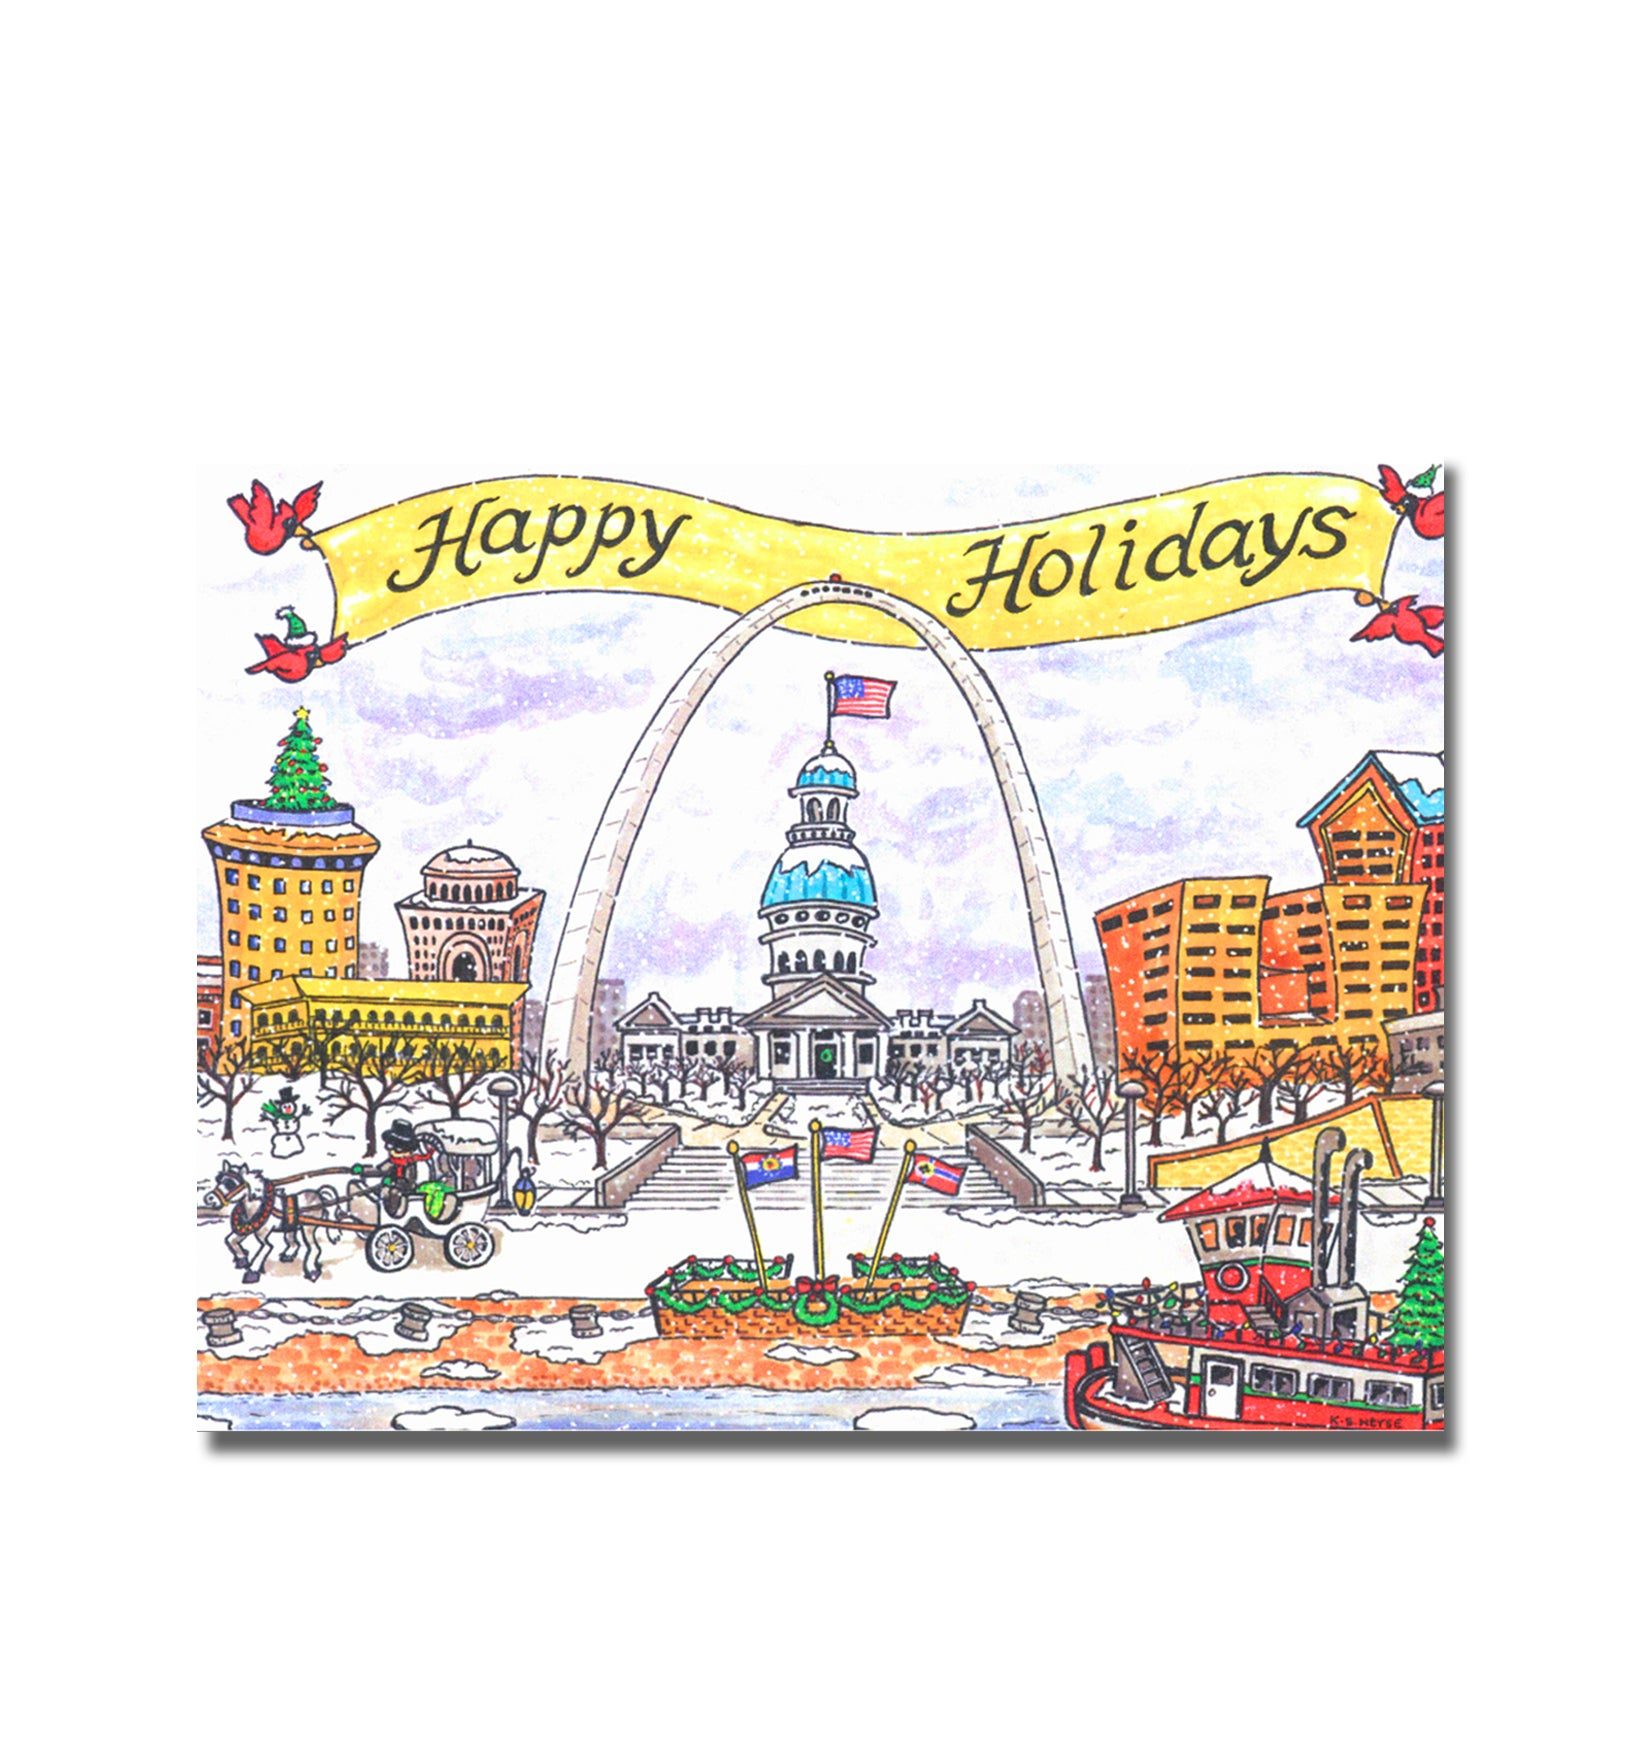 Goodnight St. Louis<br>Merry Christmas Note Cards<br><br>Available Online and<br>at Retailers